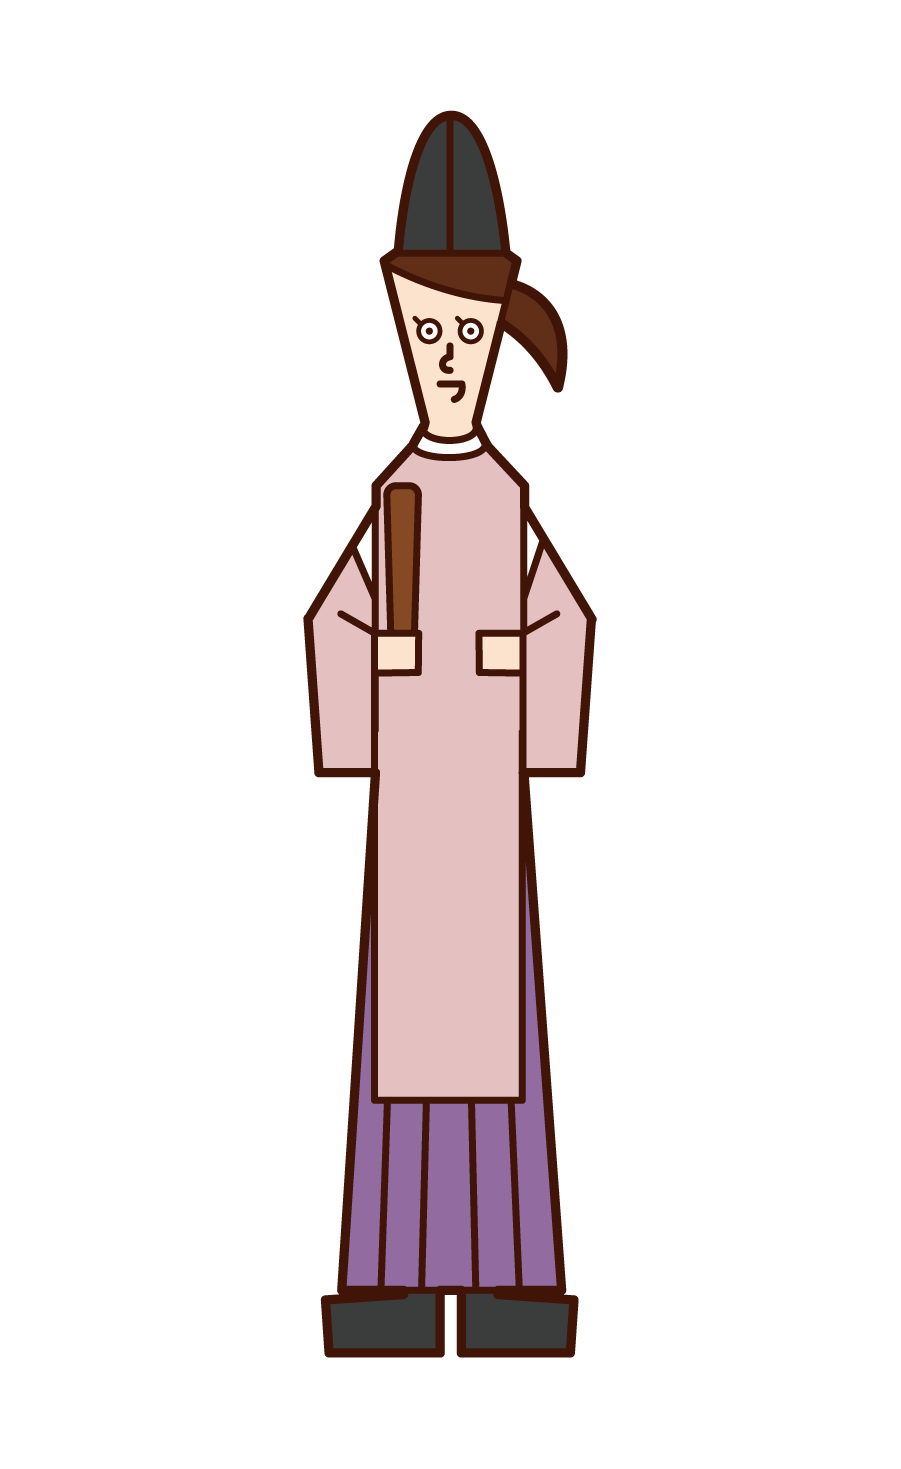 Illustration of priests and priests (women)